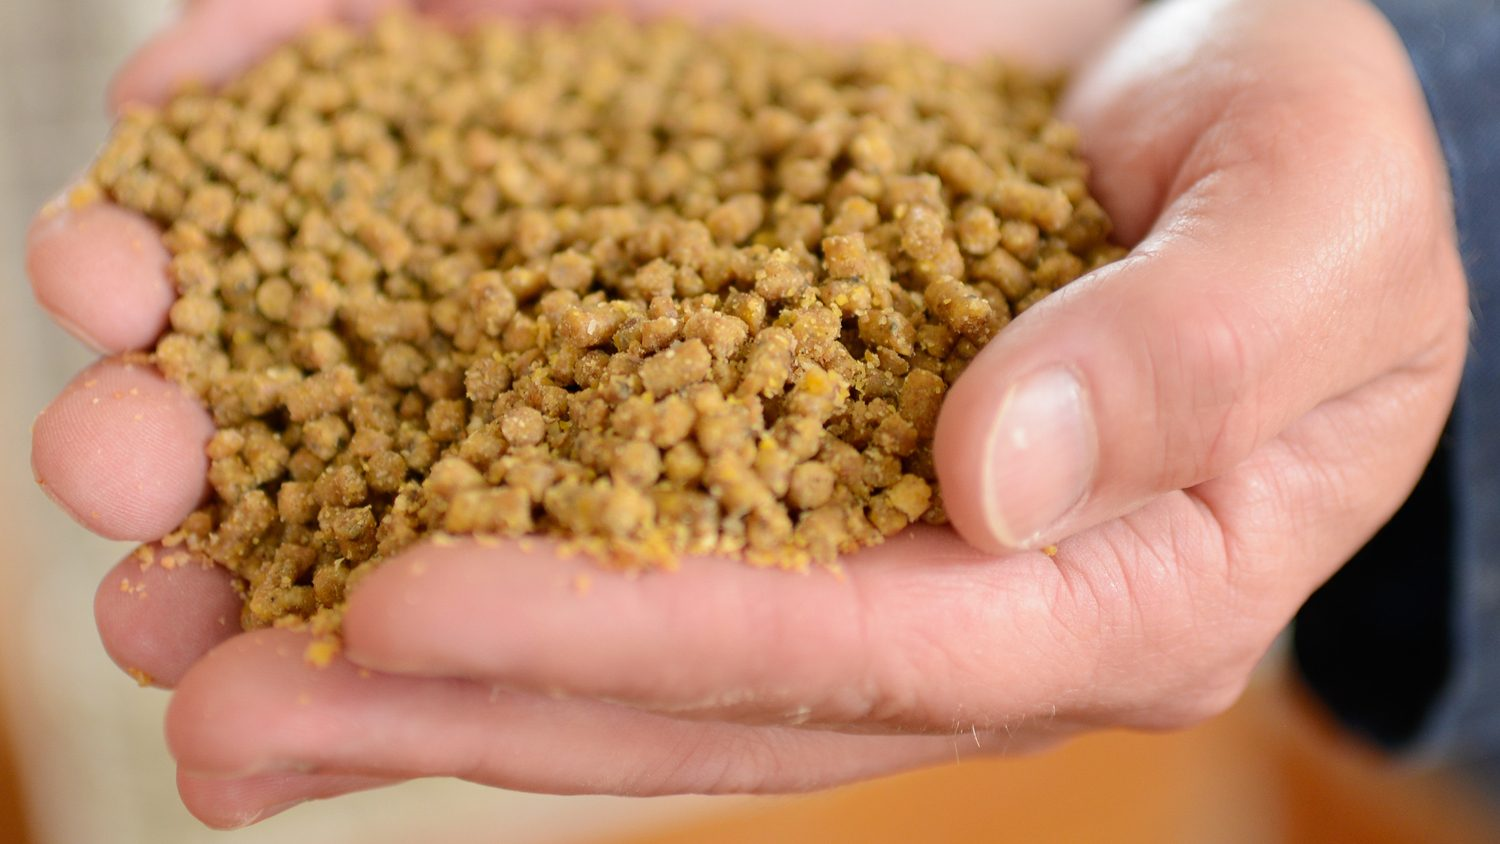 Close-up of man's hand filled with poultry feed.